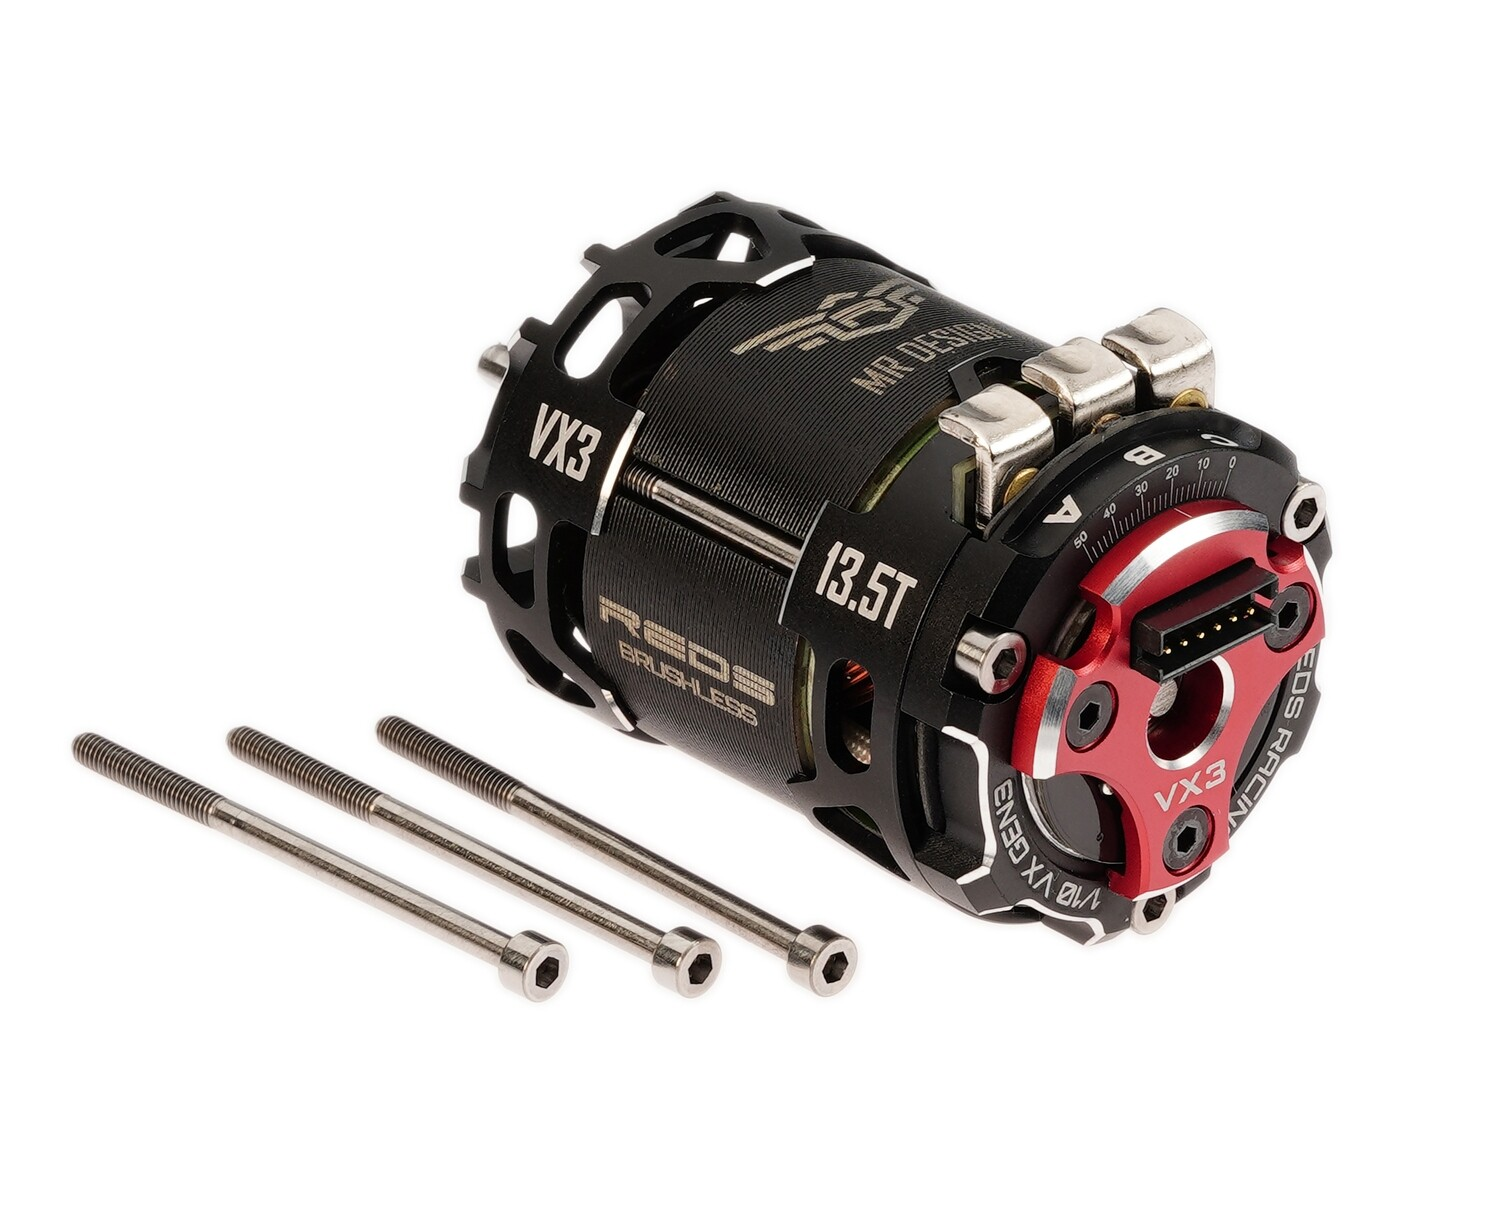 BRUSHLESS MOTOR REDS VX3 540 17.5T 2 POLE SENSORED FACTORY SELECTED